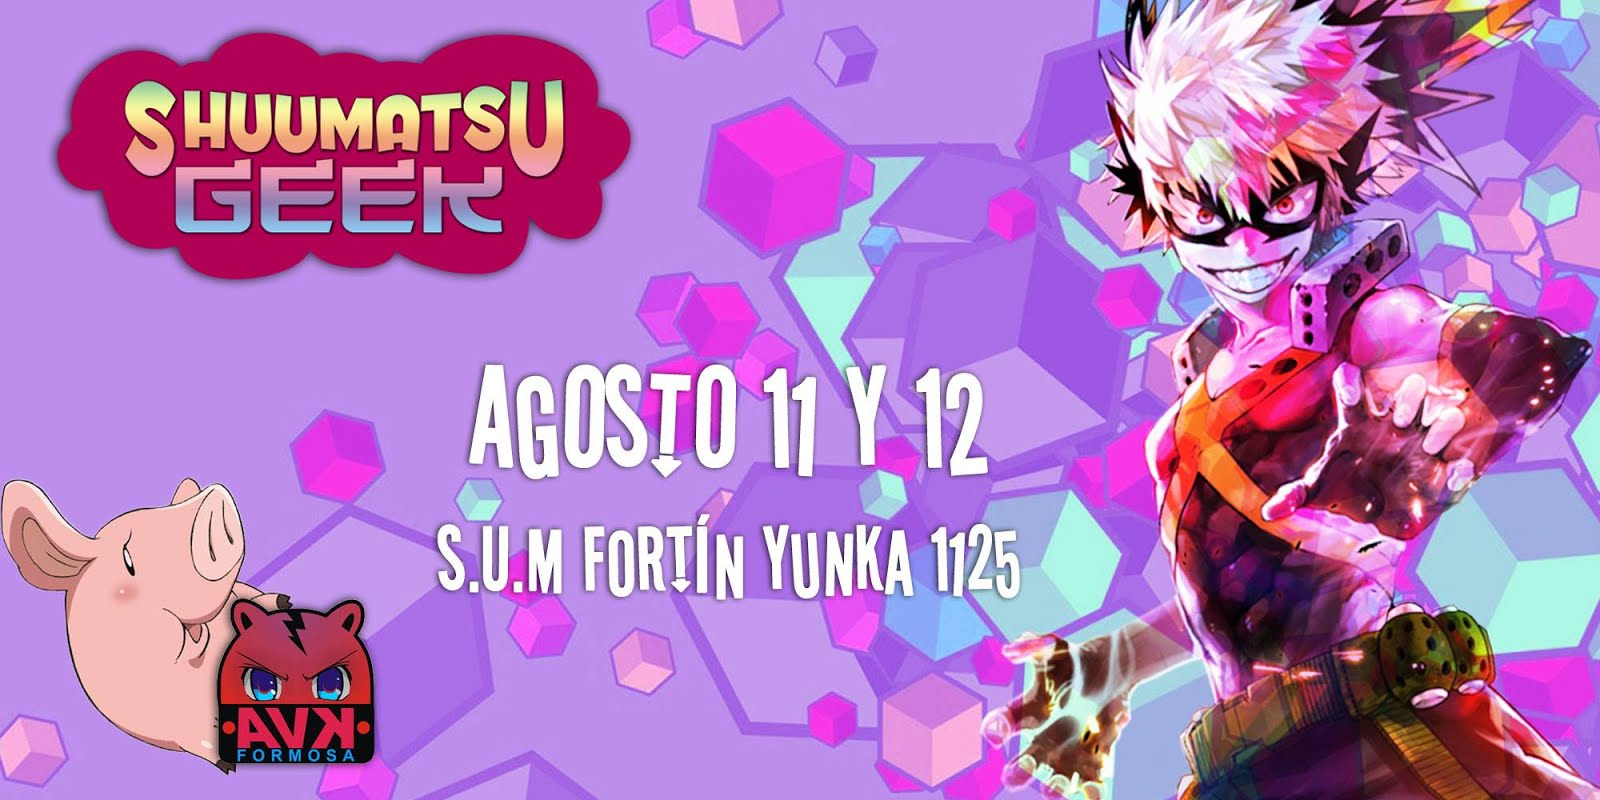 SHUUMATSU GEEK 2018 - Formosa, Capital.